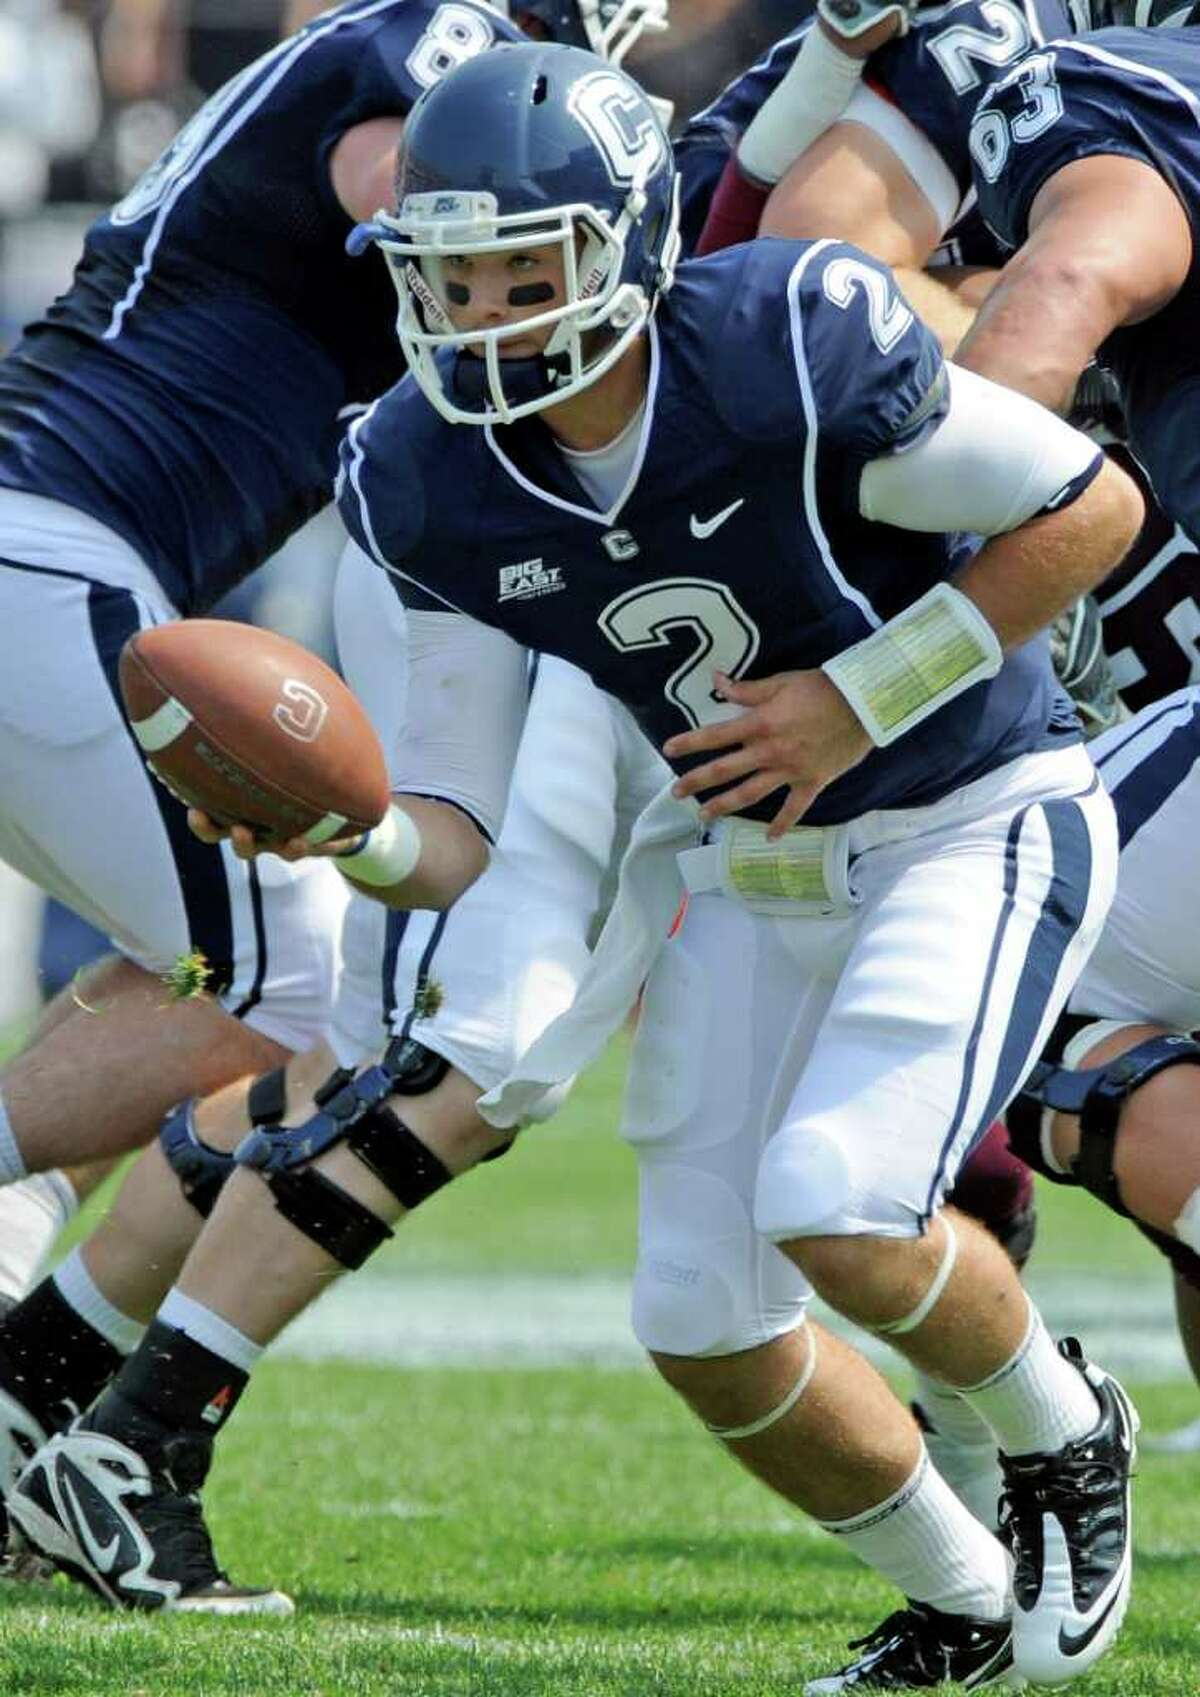 Connecticut's Mike Nebrich hands the ball off during his team's 35-3 victory over Fordham, in an NCAA college football game in East Hartford, Conn., on Saturday, Sept. 3, 2011.